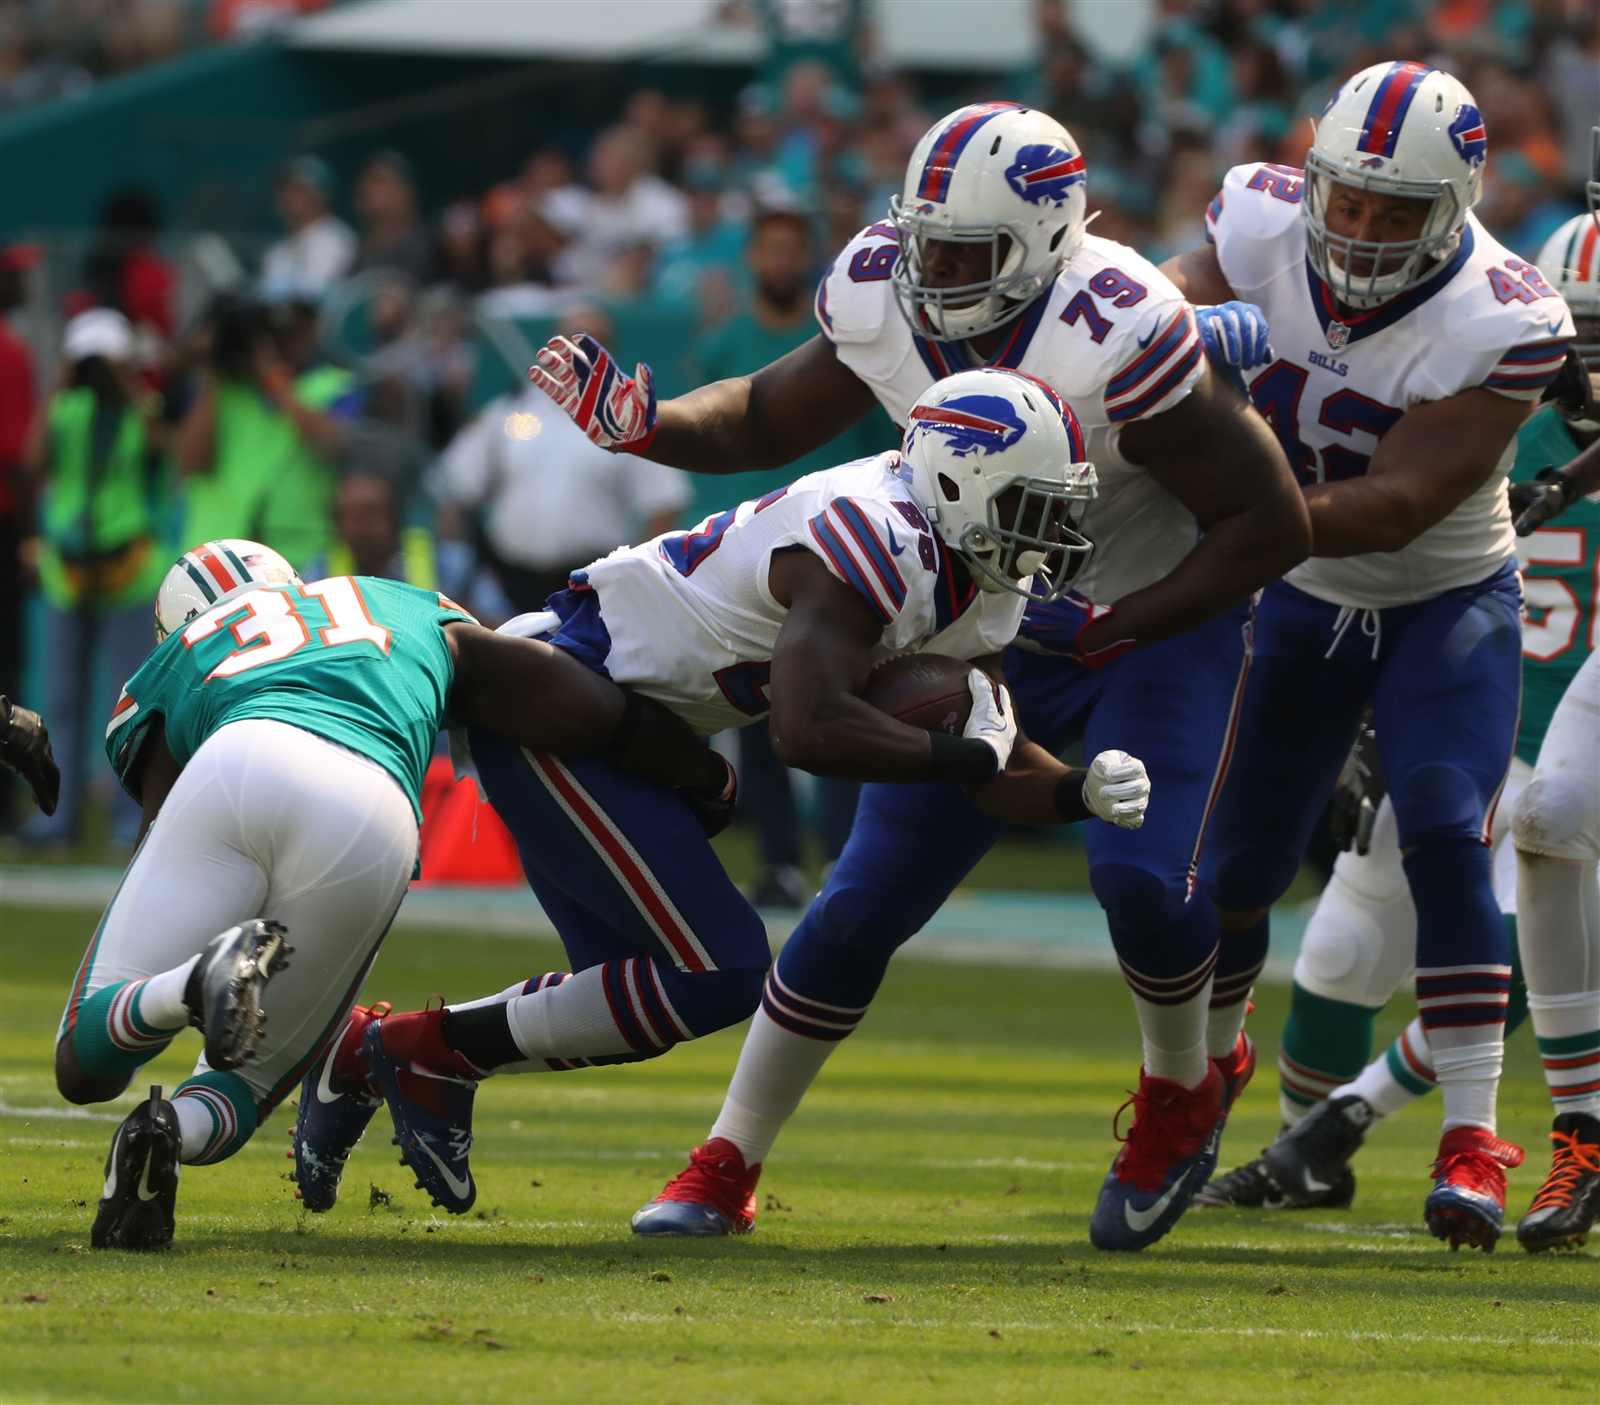 Bills running back LeSean McCoy passed all of the medial staff's tests before playing in Sunday's game against Miami. (James P. McCoy/Buffalo News)